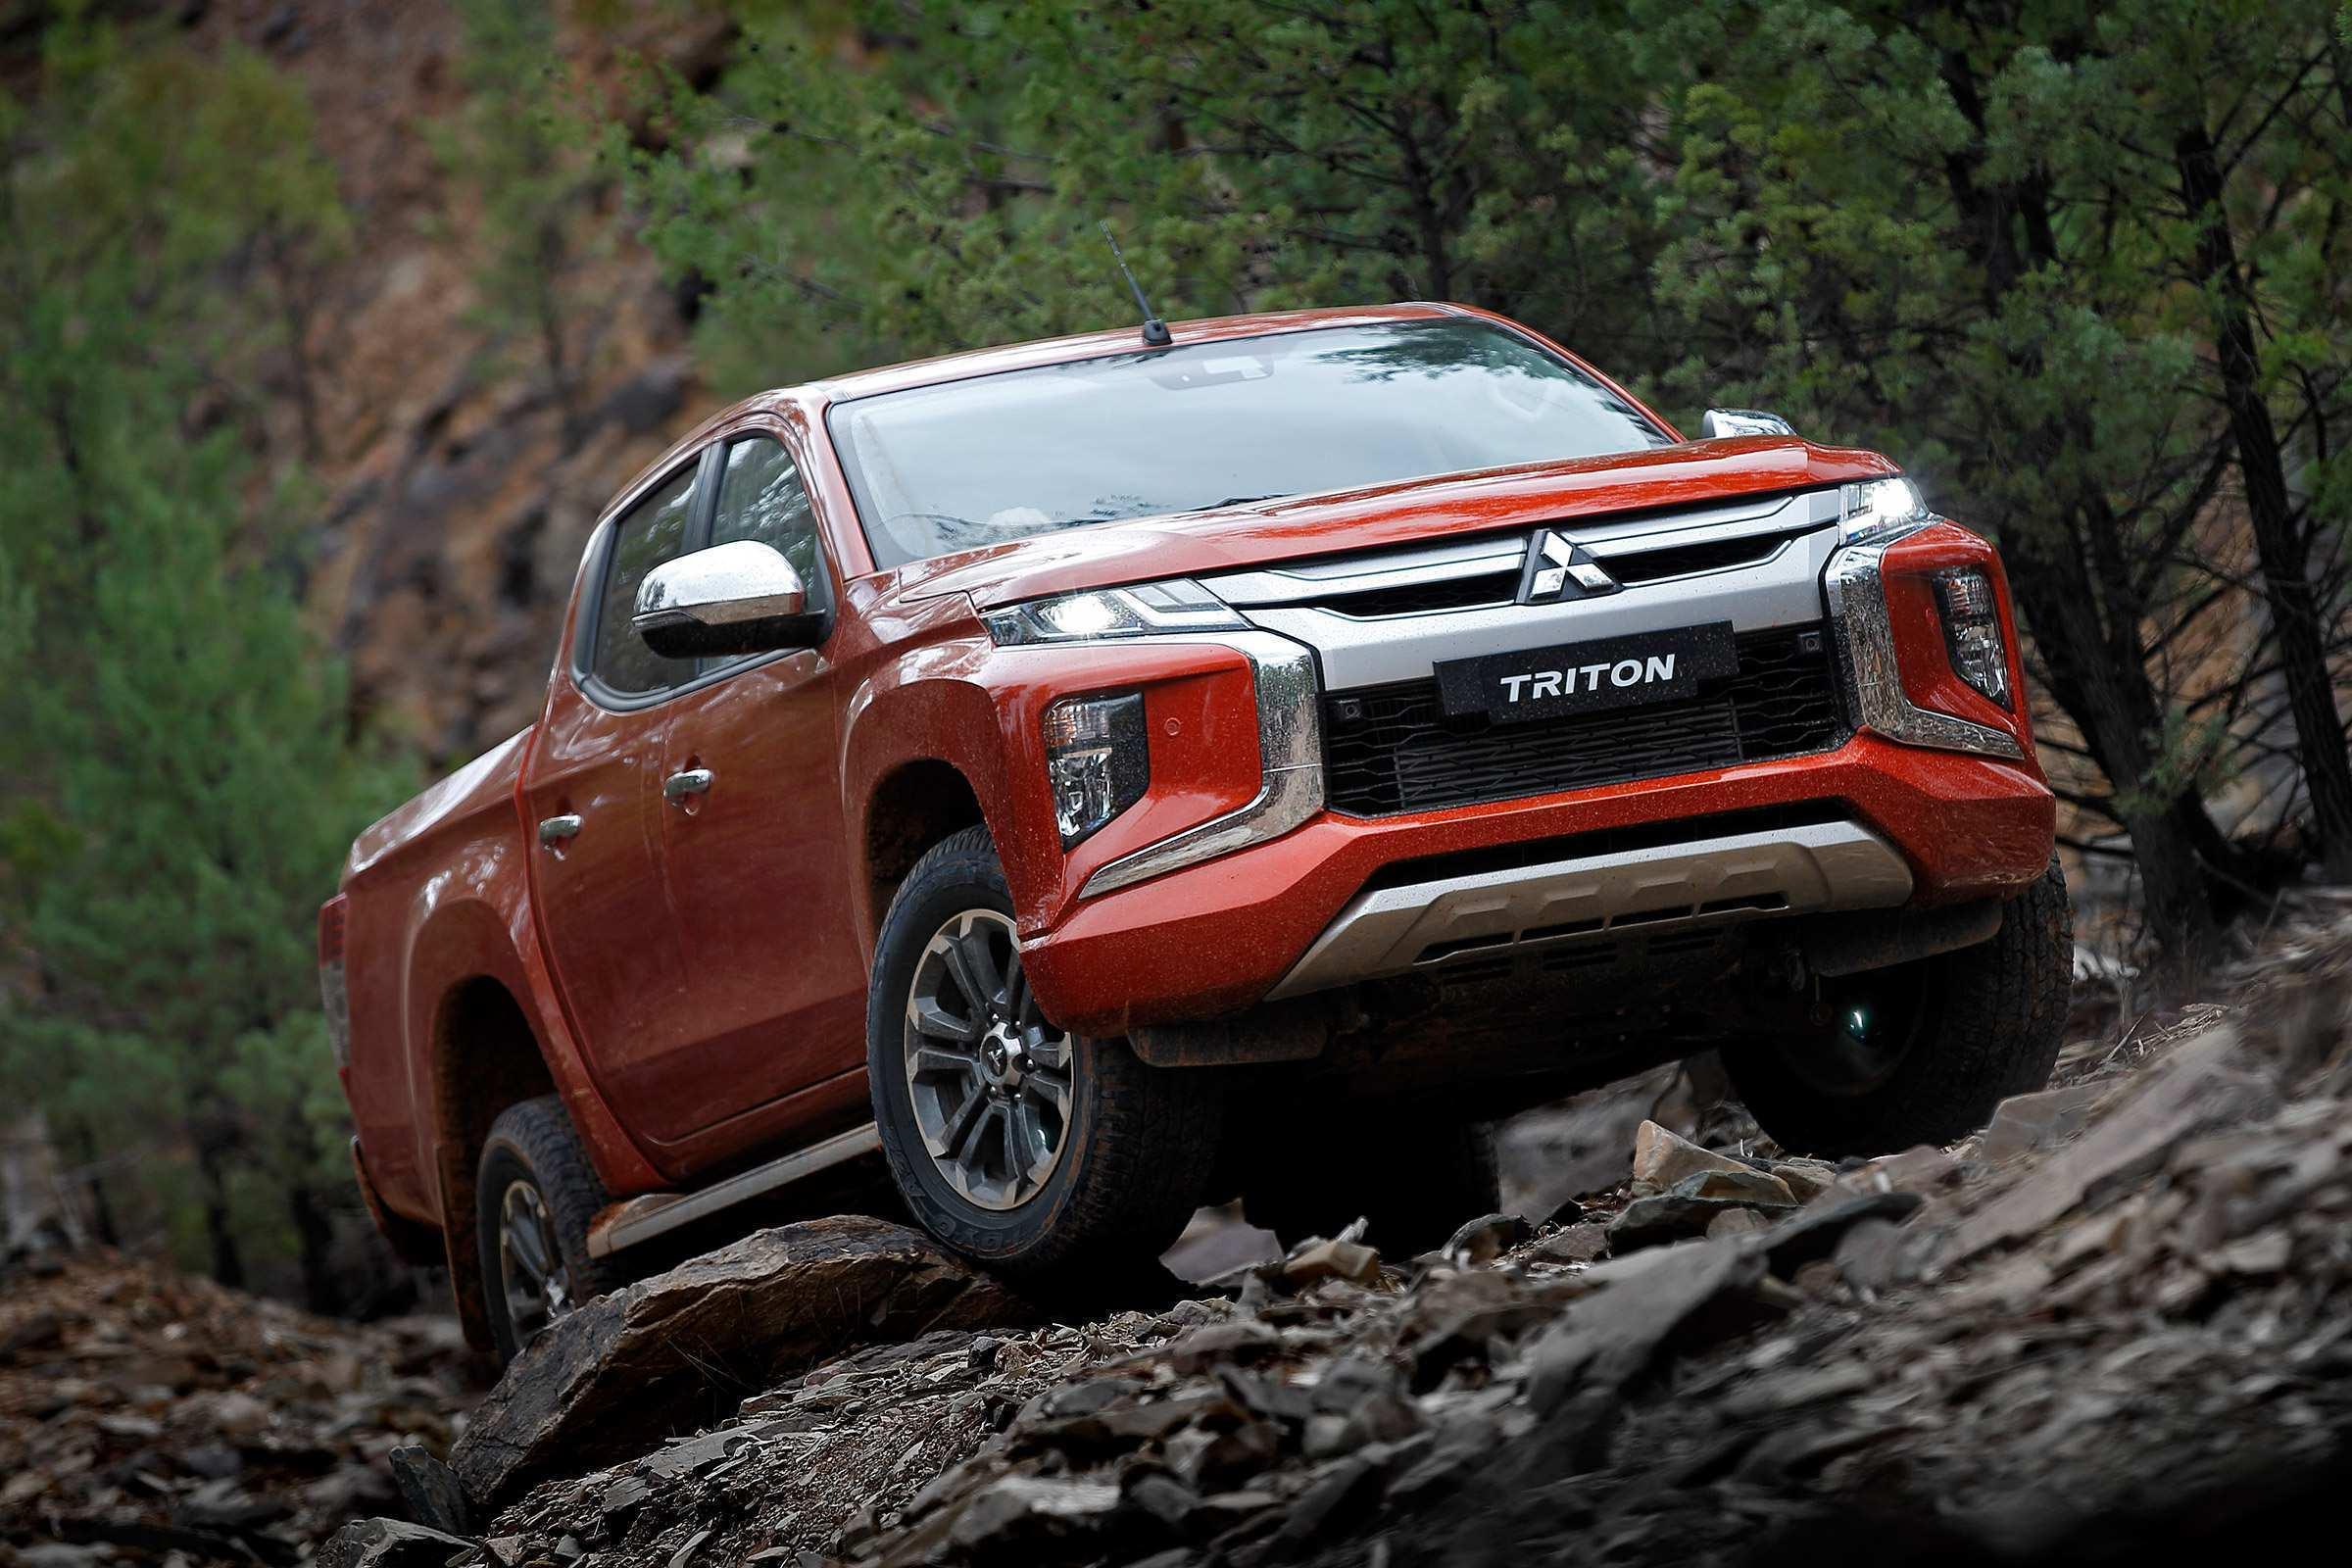 67 All New 2019 Mitsubishi Triton Price And Release Date